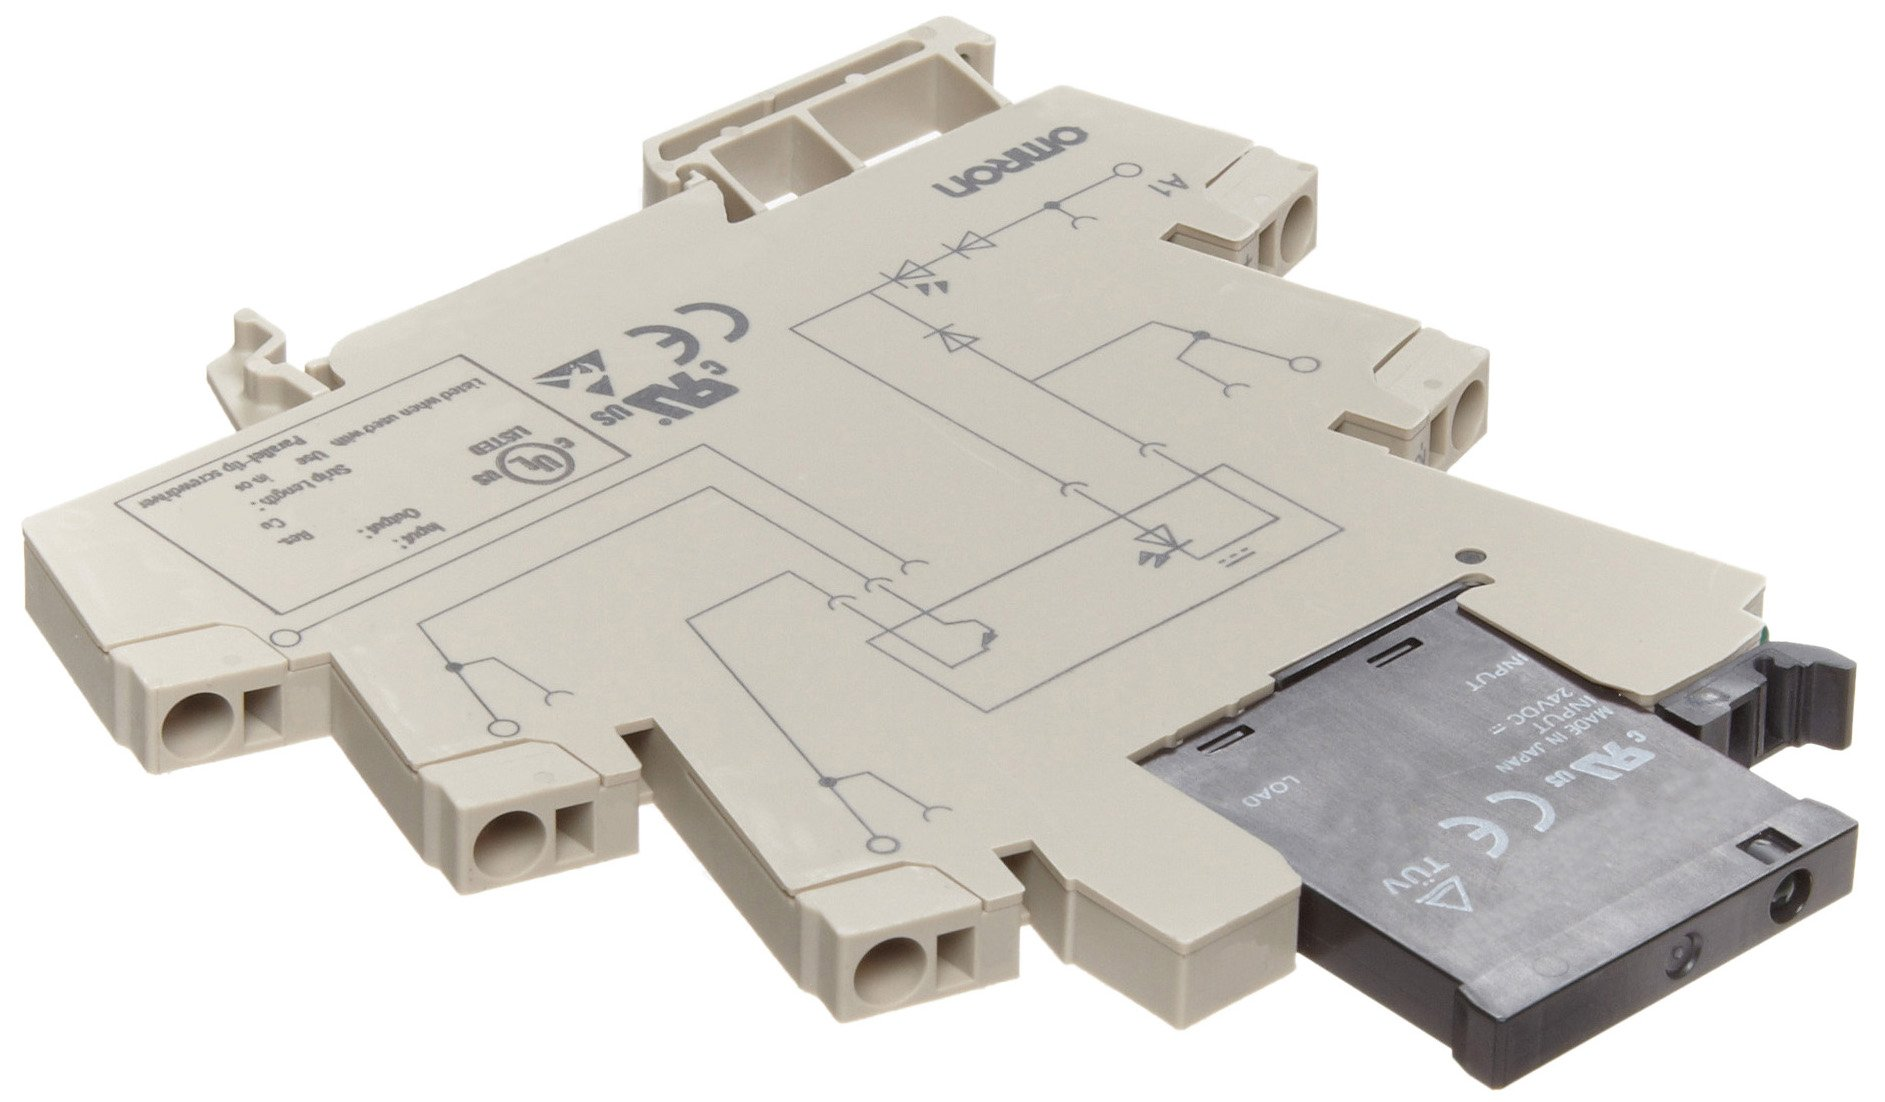 Omron G2RV-SL700 DC12 (DC11) Slim Relay and Socket, 12 VDC Input Voltage, Single Pole Double Throw Contacts